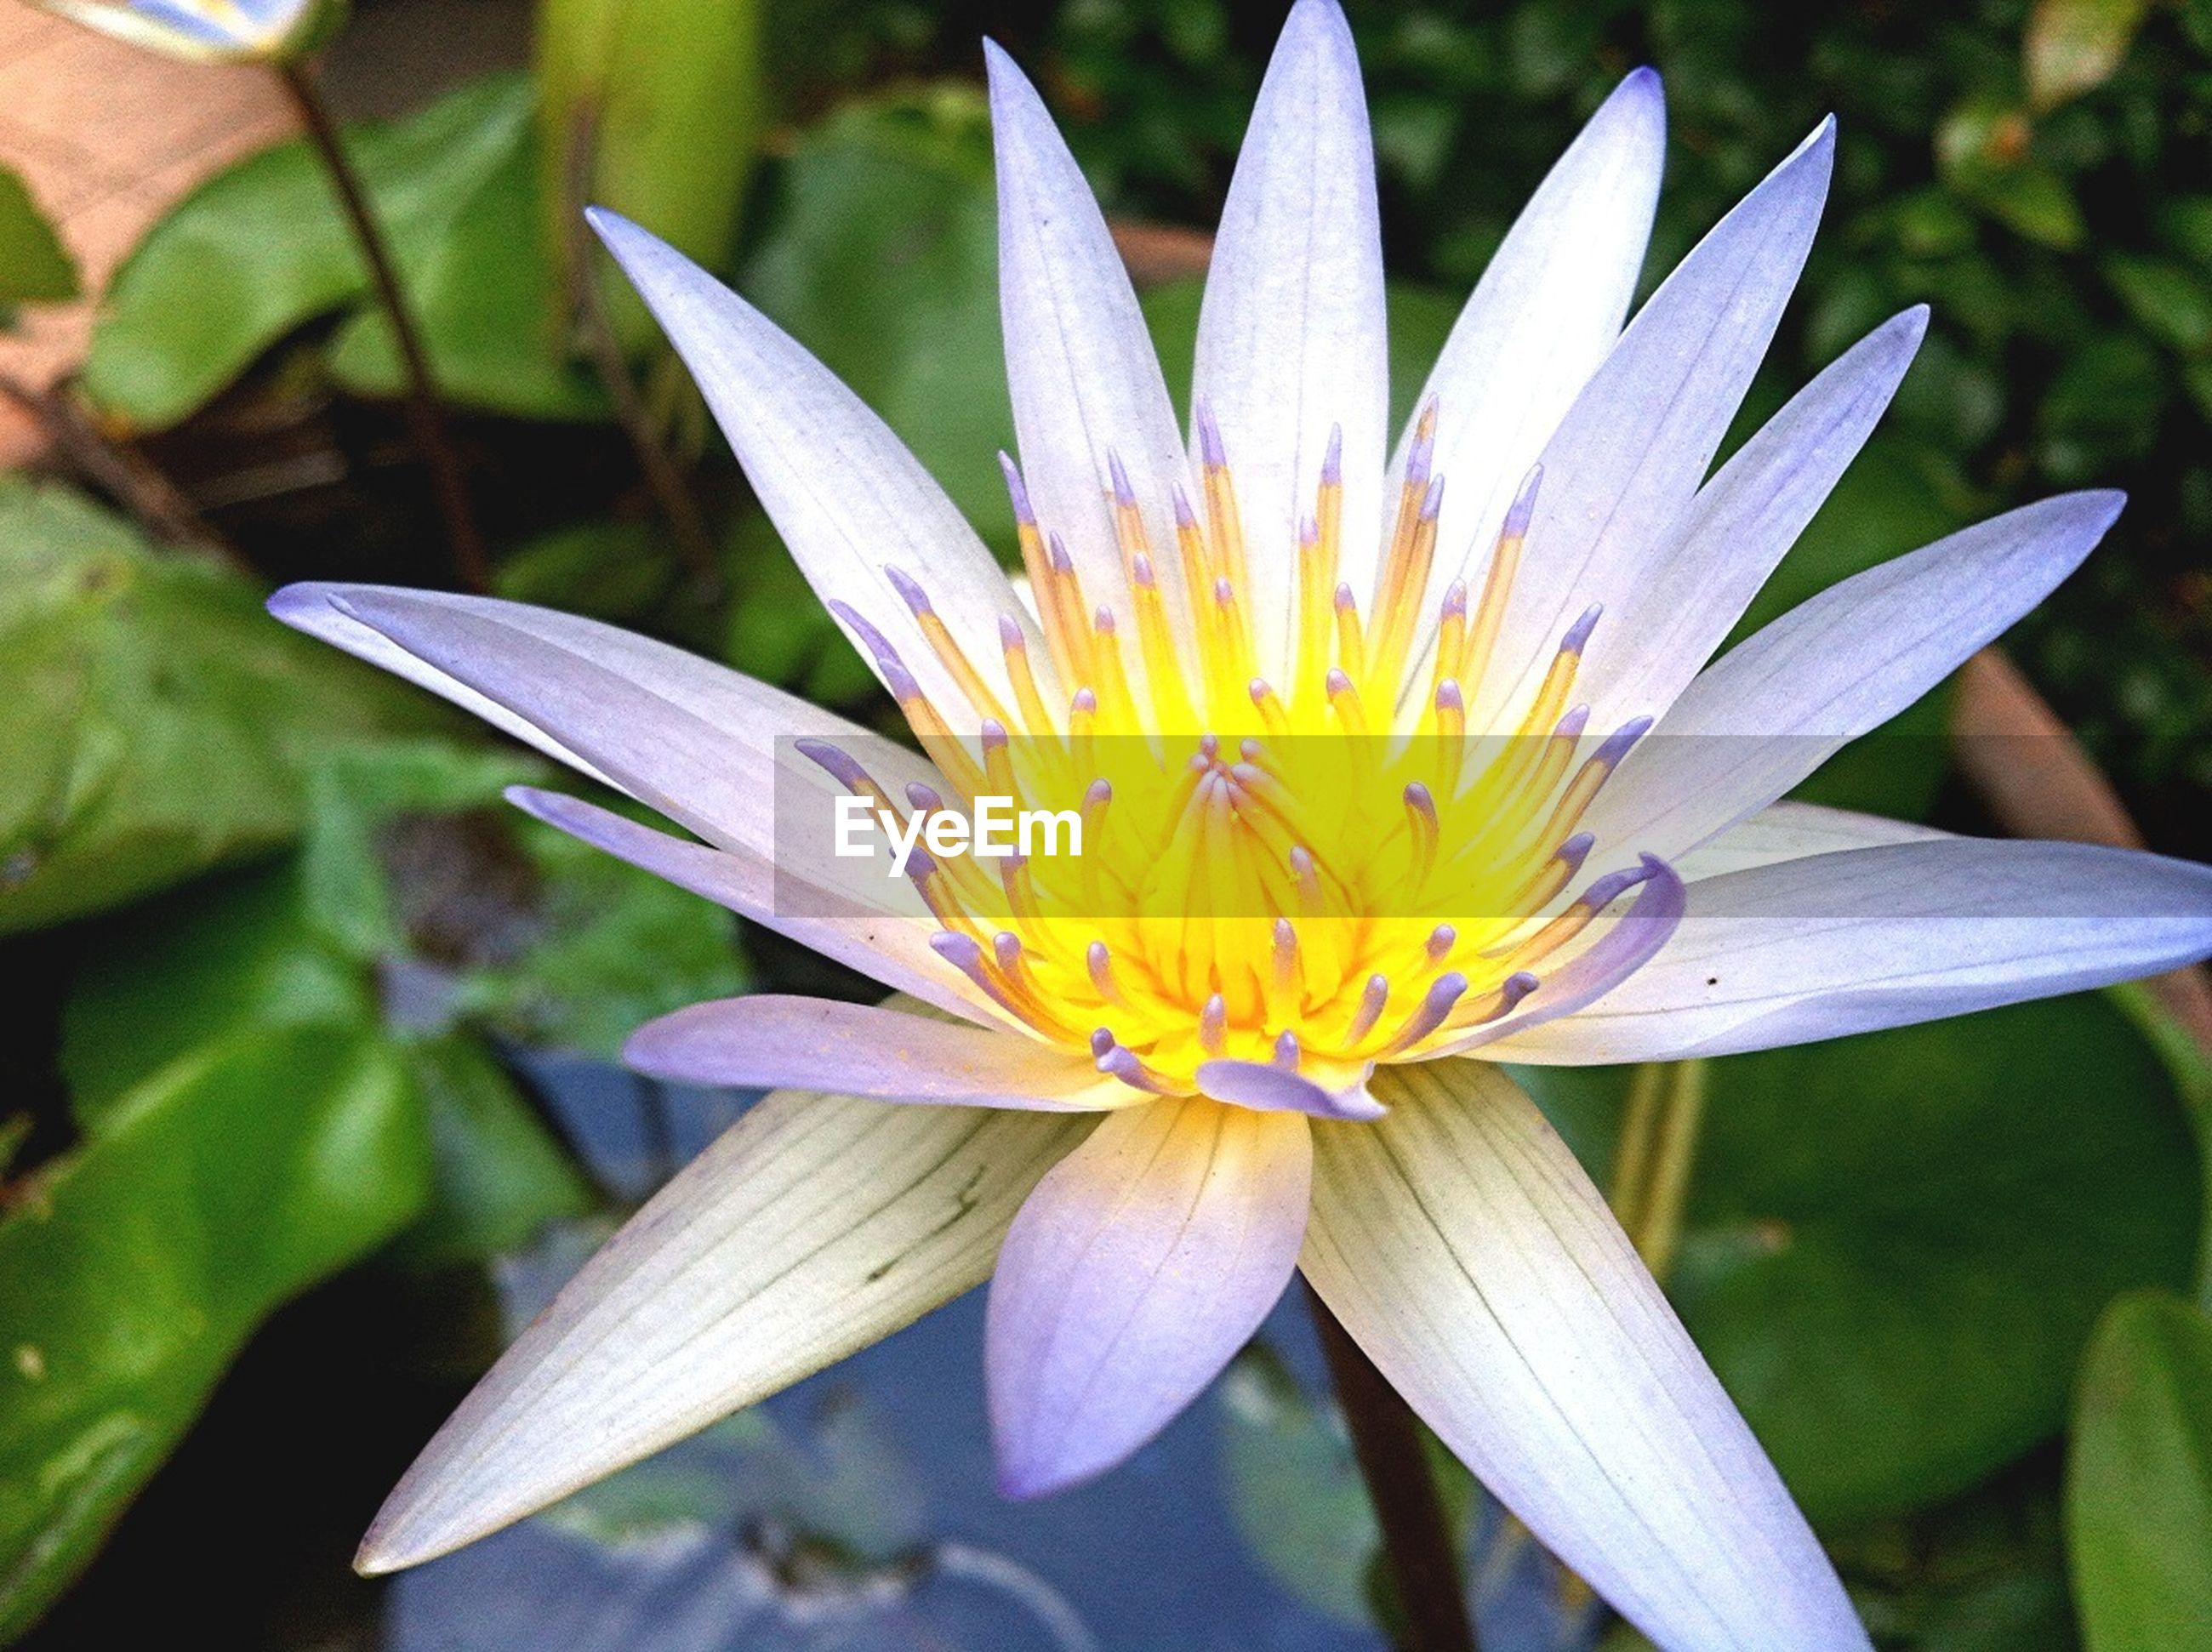 petal, flower, flower head, freshness, fragility, single flower, water lily, pollen, close-up, beauty in nature, growth, blooming, nature, focus on foreground, pond, yellow, plant, stamen, leaf, lotus water lily